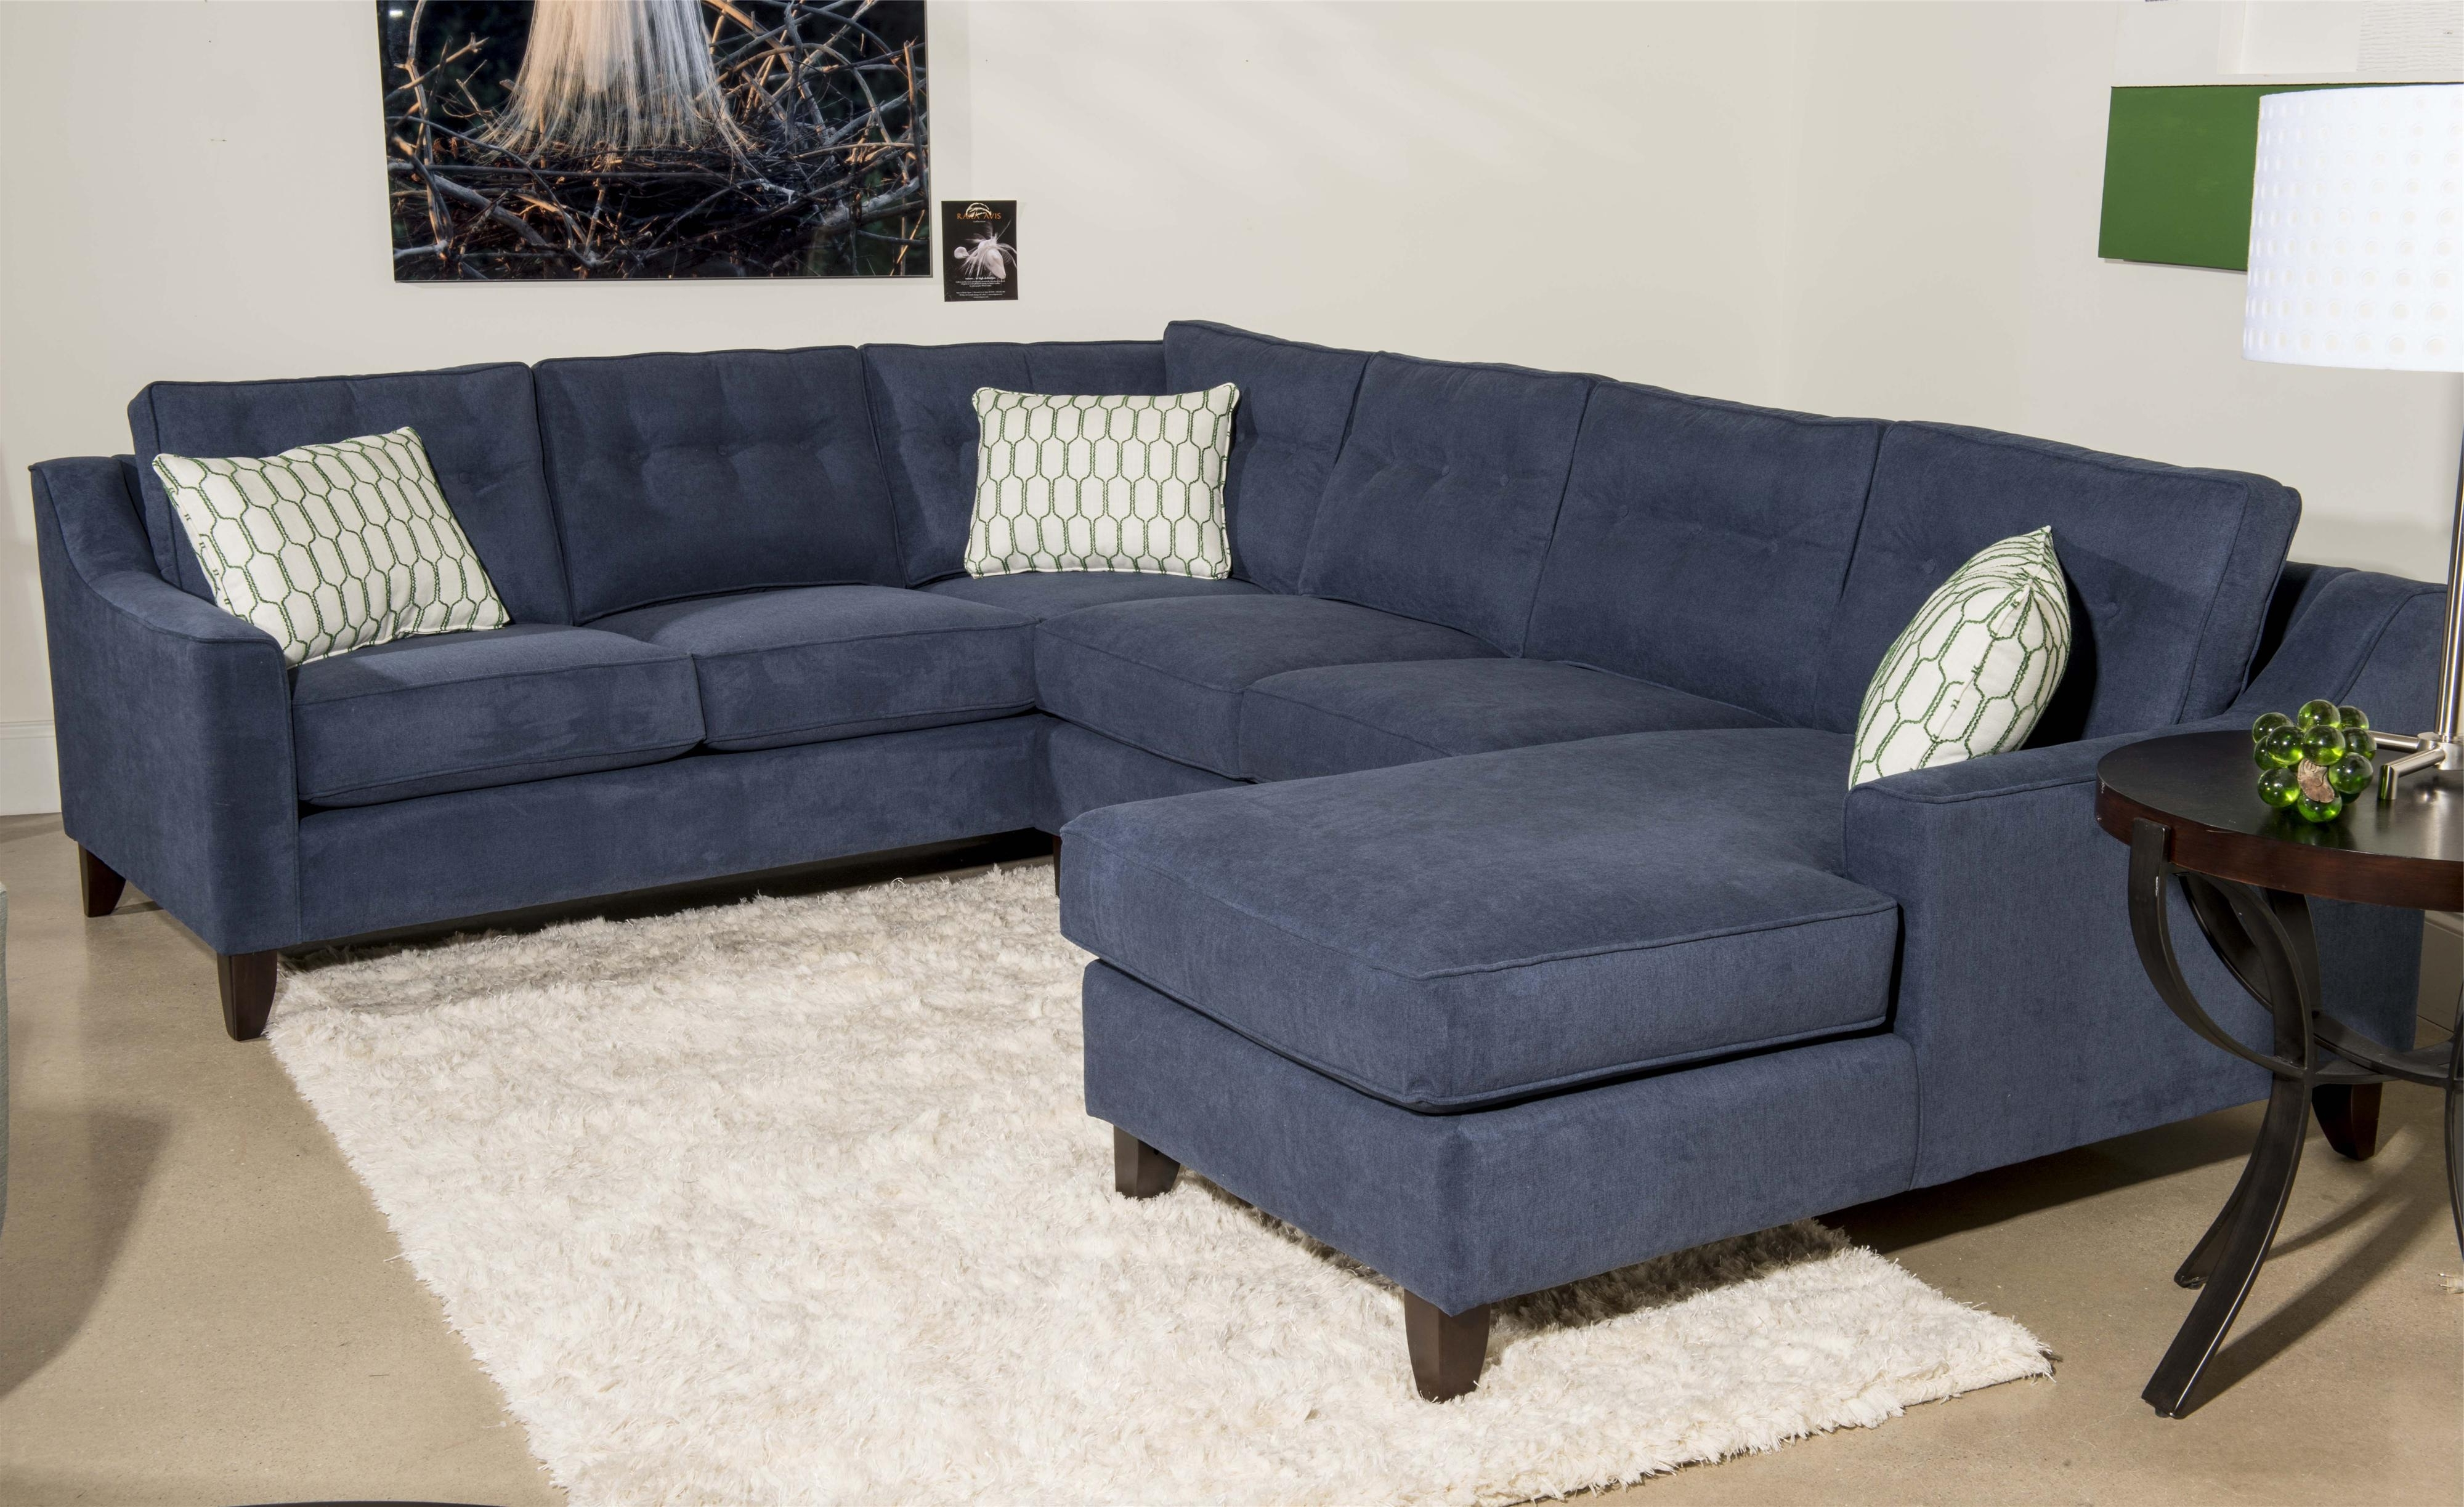 Contemporary 3 Piece Sectional Sofa With Chaiseklaussner Within Fashionable 3 Piece Sectional Sofas With Chaise (View 6 of 15)